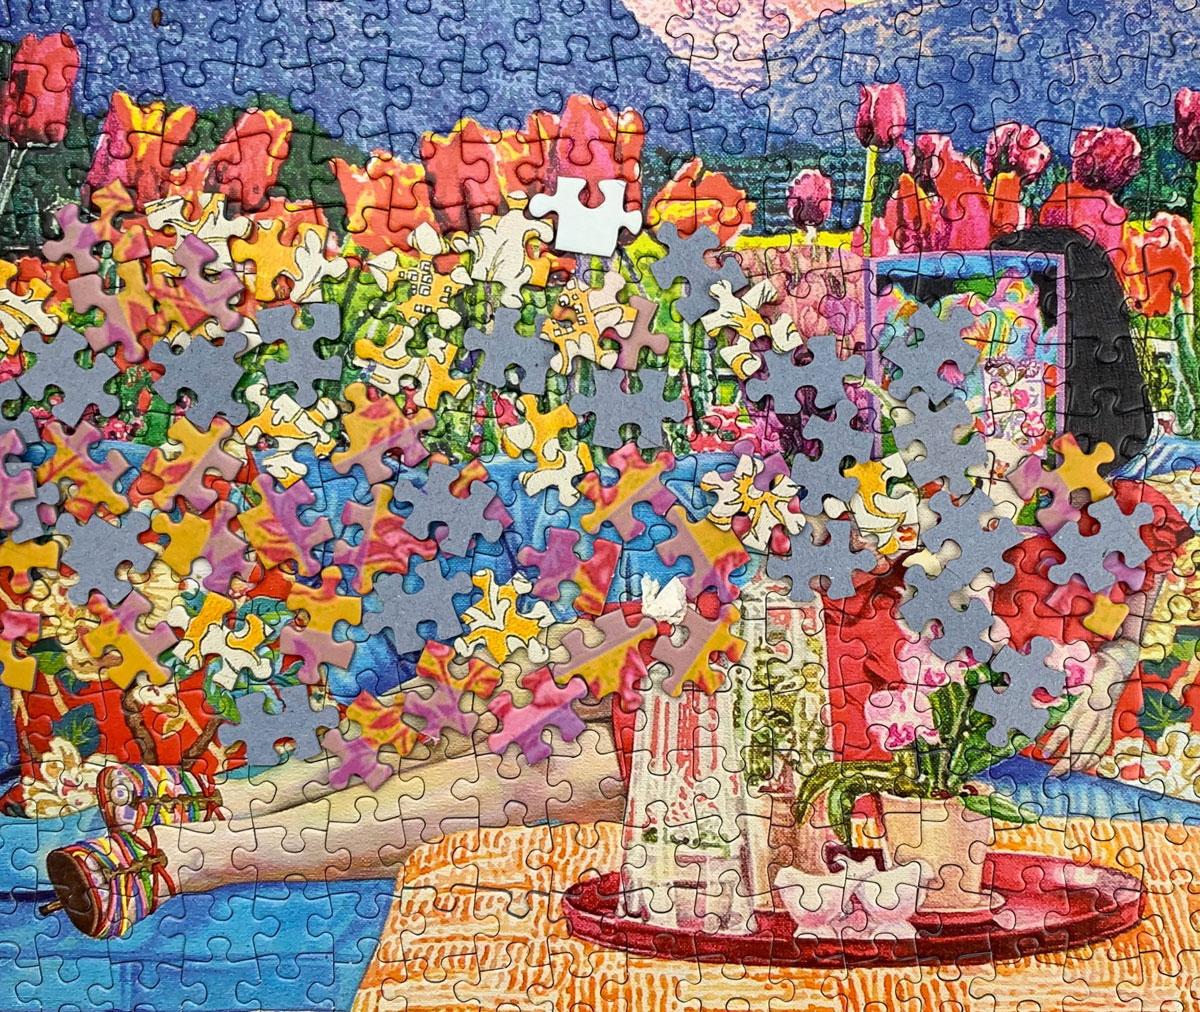 Some studies claim that jigsaw puzzles can actually help to prevent Alzheimer's